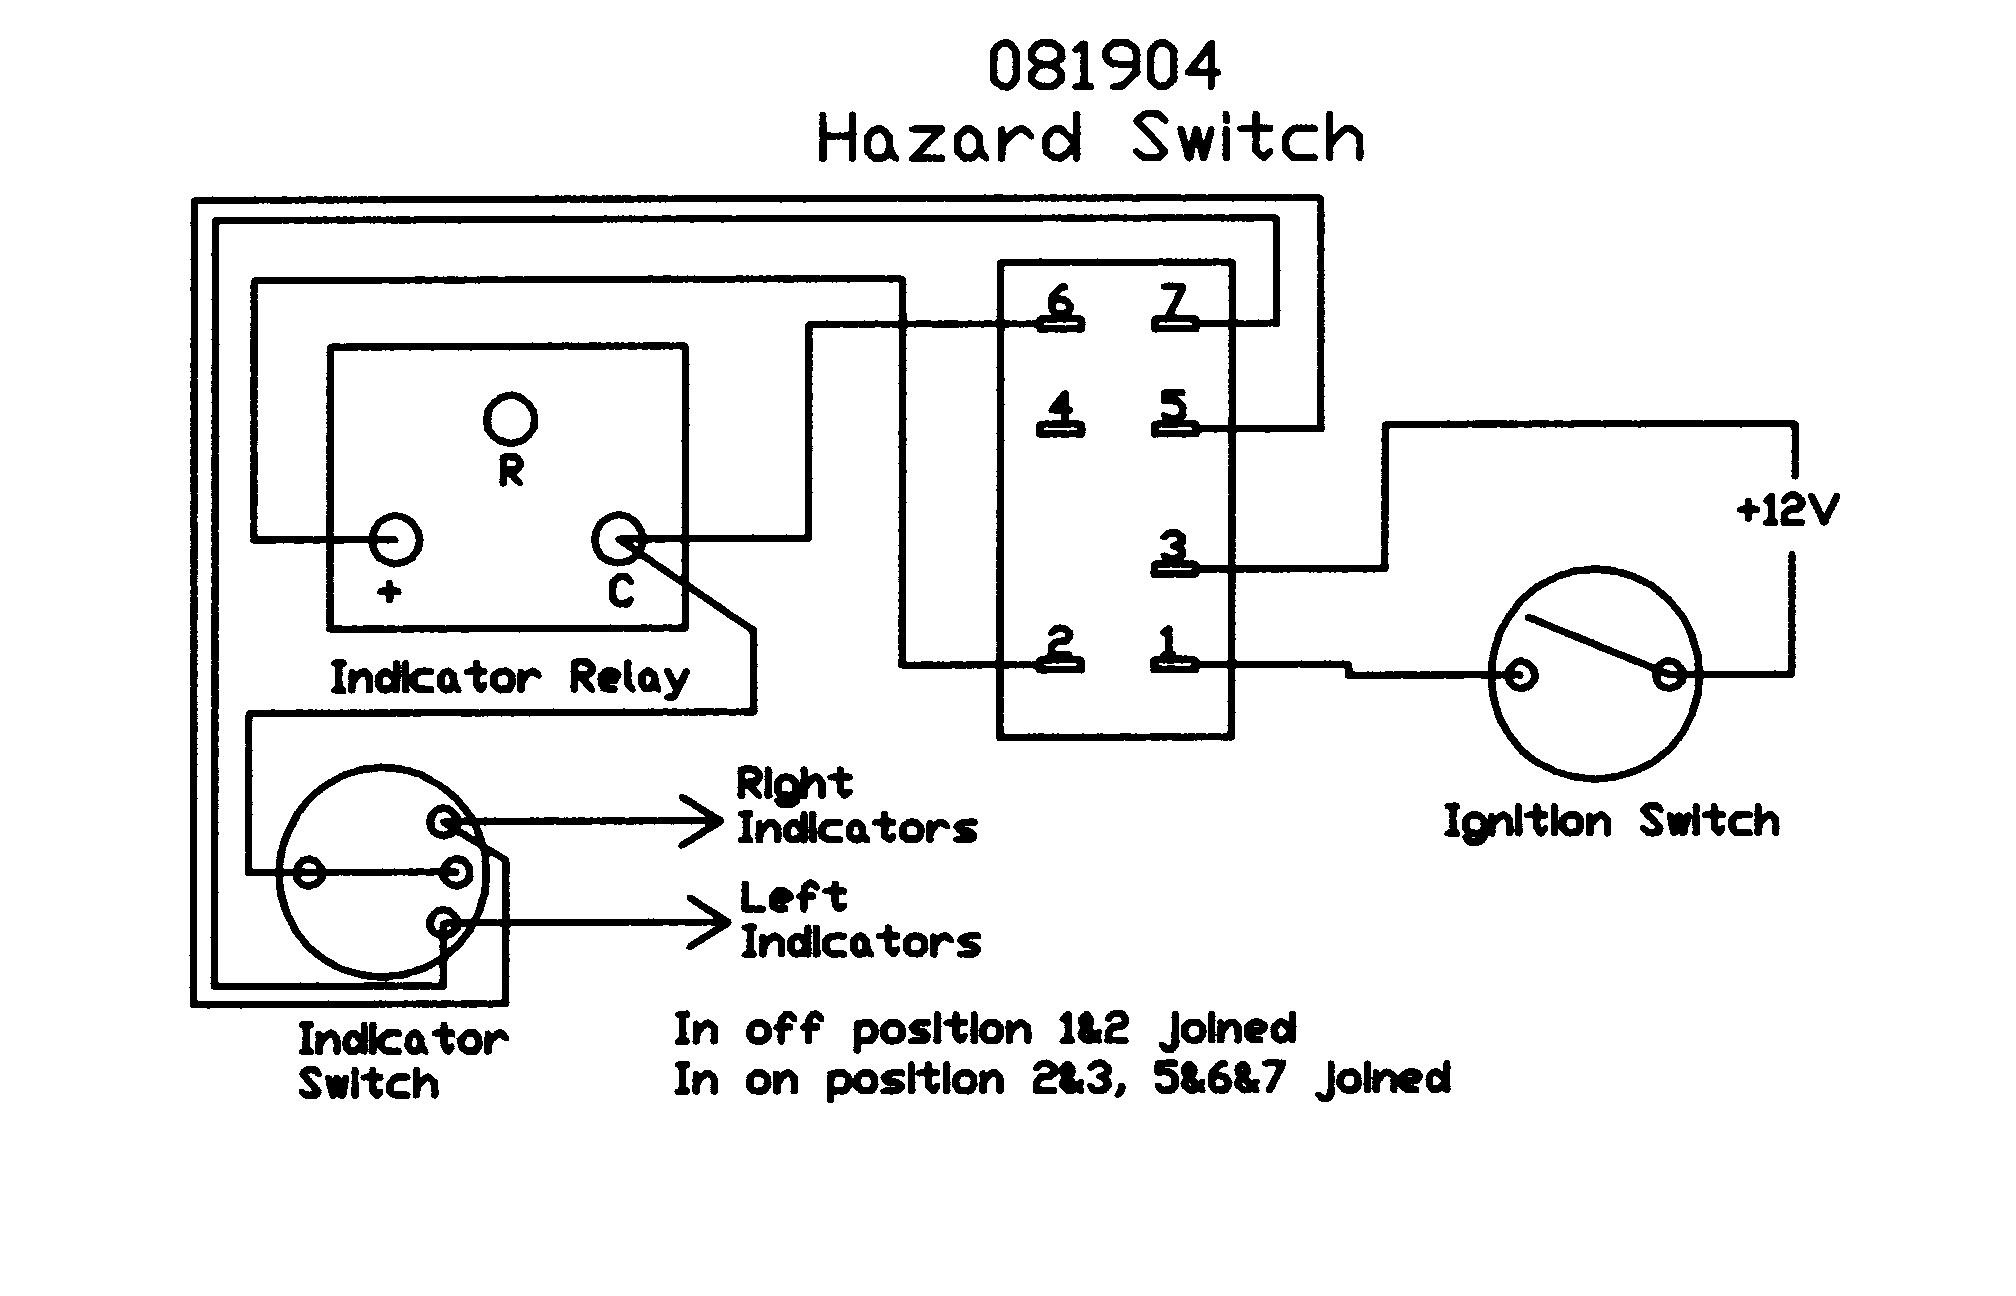 Basic Wiring Diagram For Hazard Lights, Basic, Free Engine